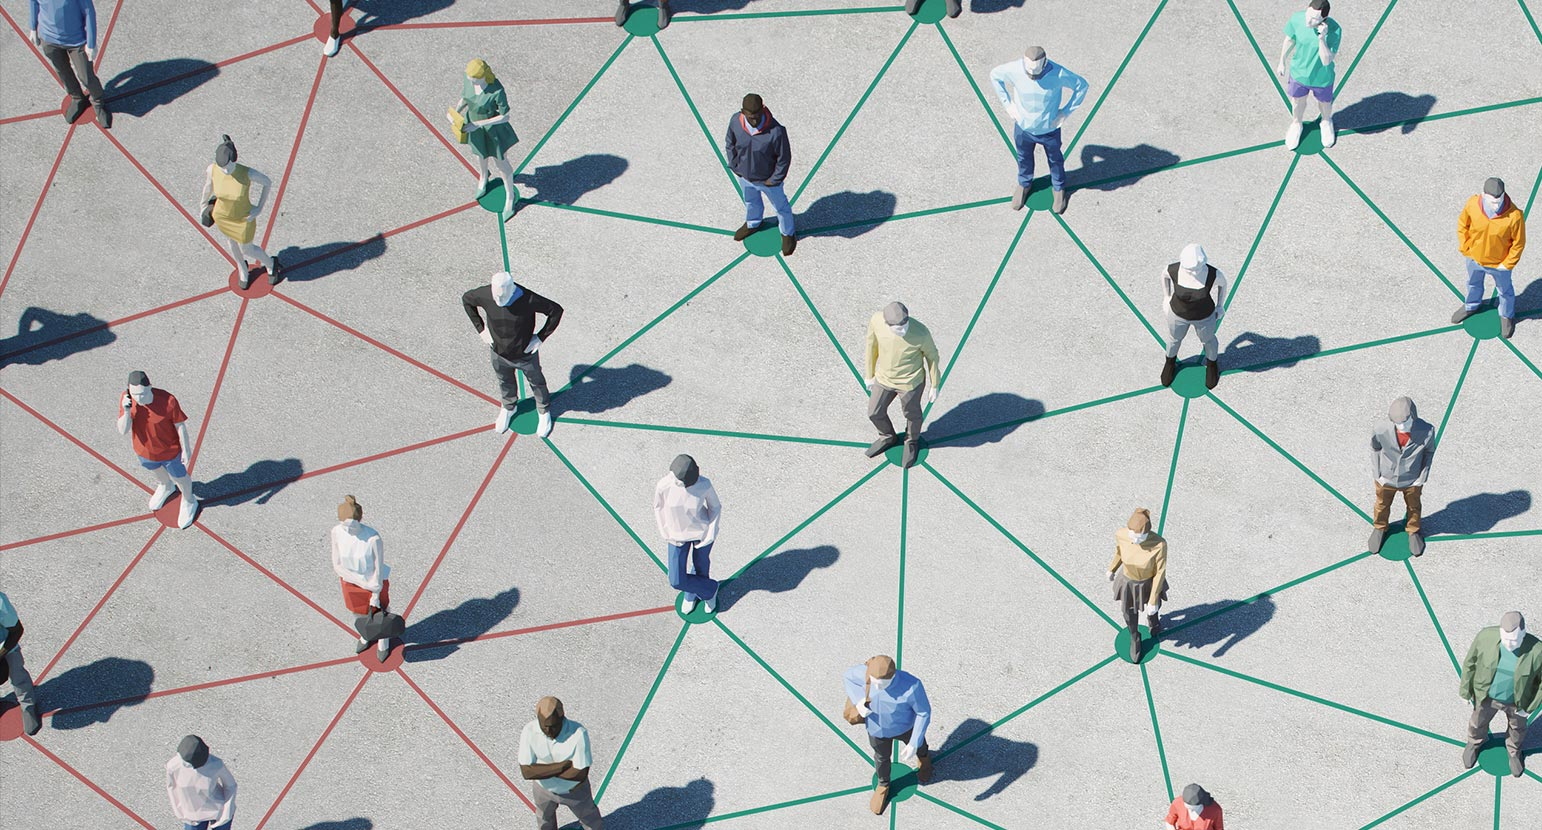 People Connected Through Data